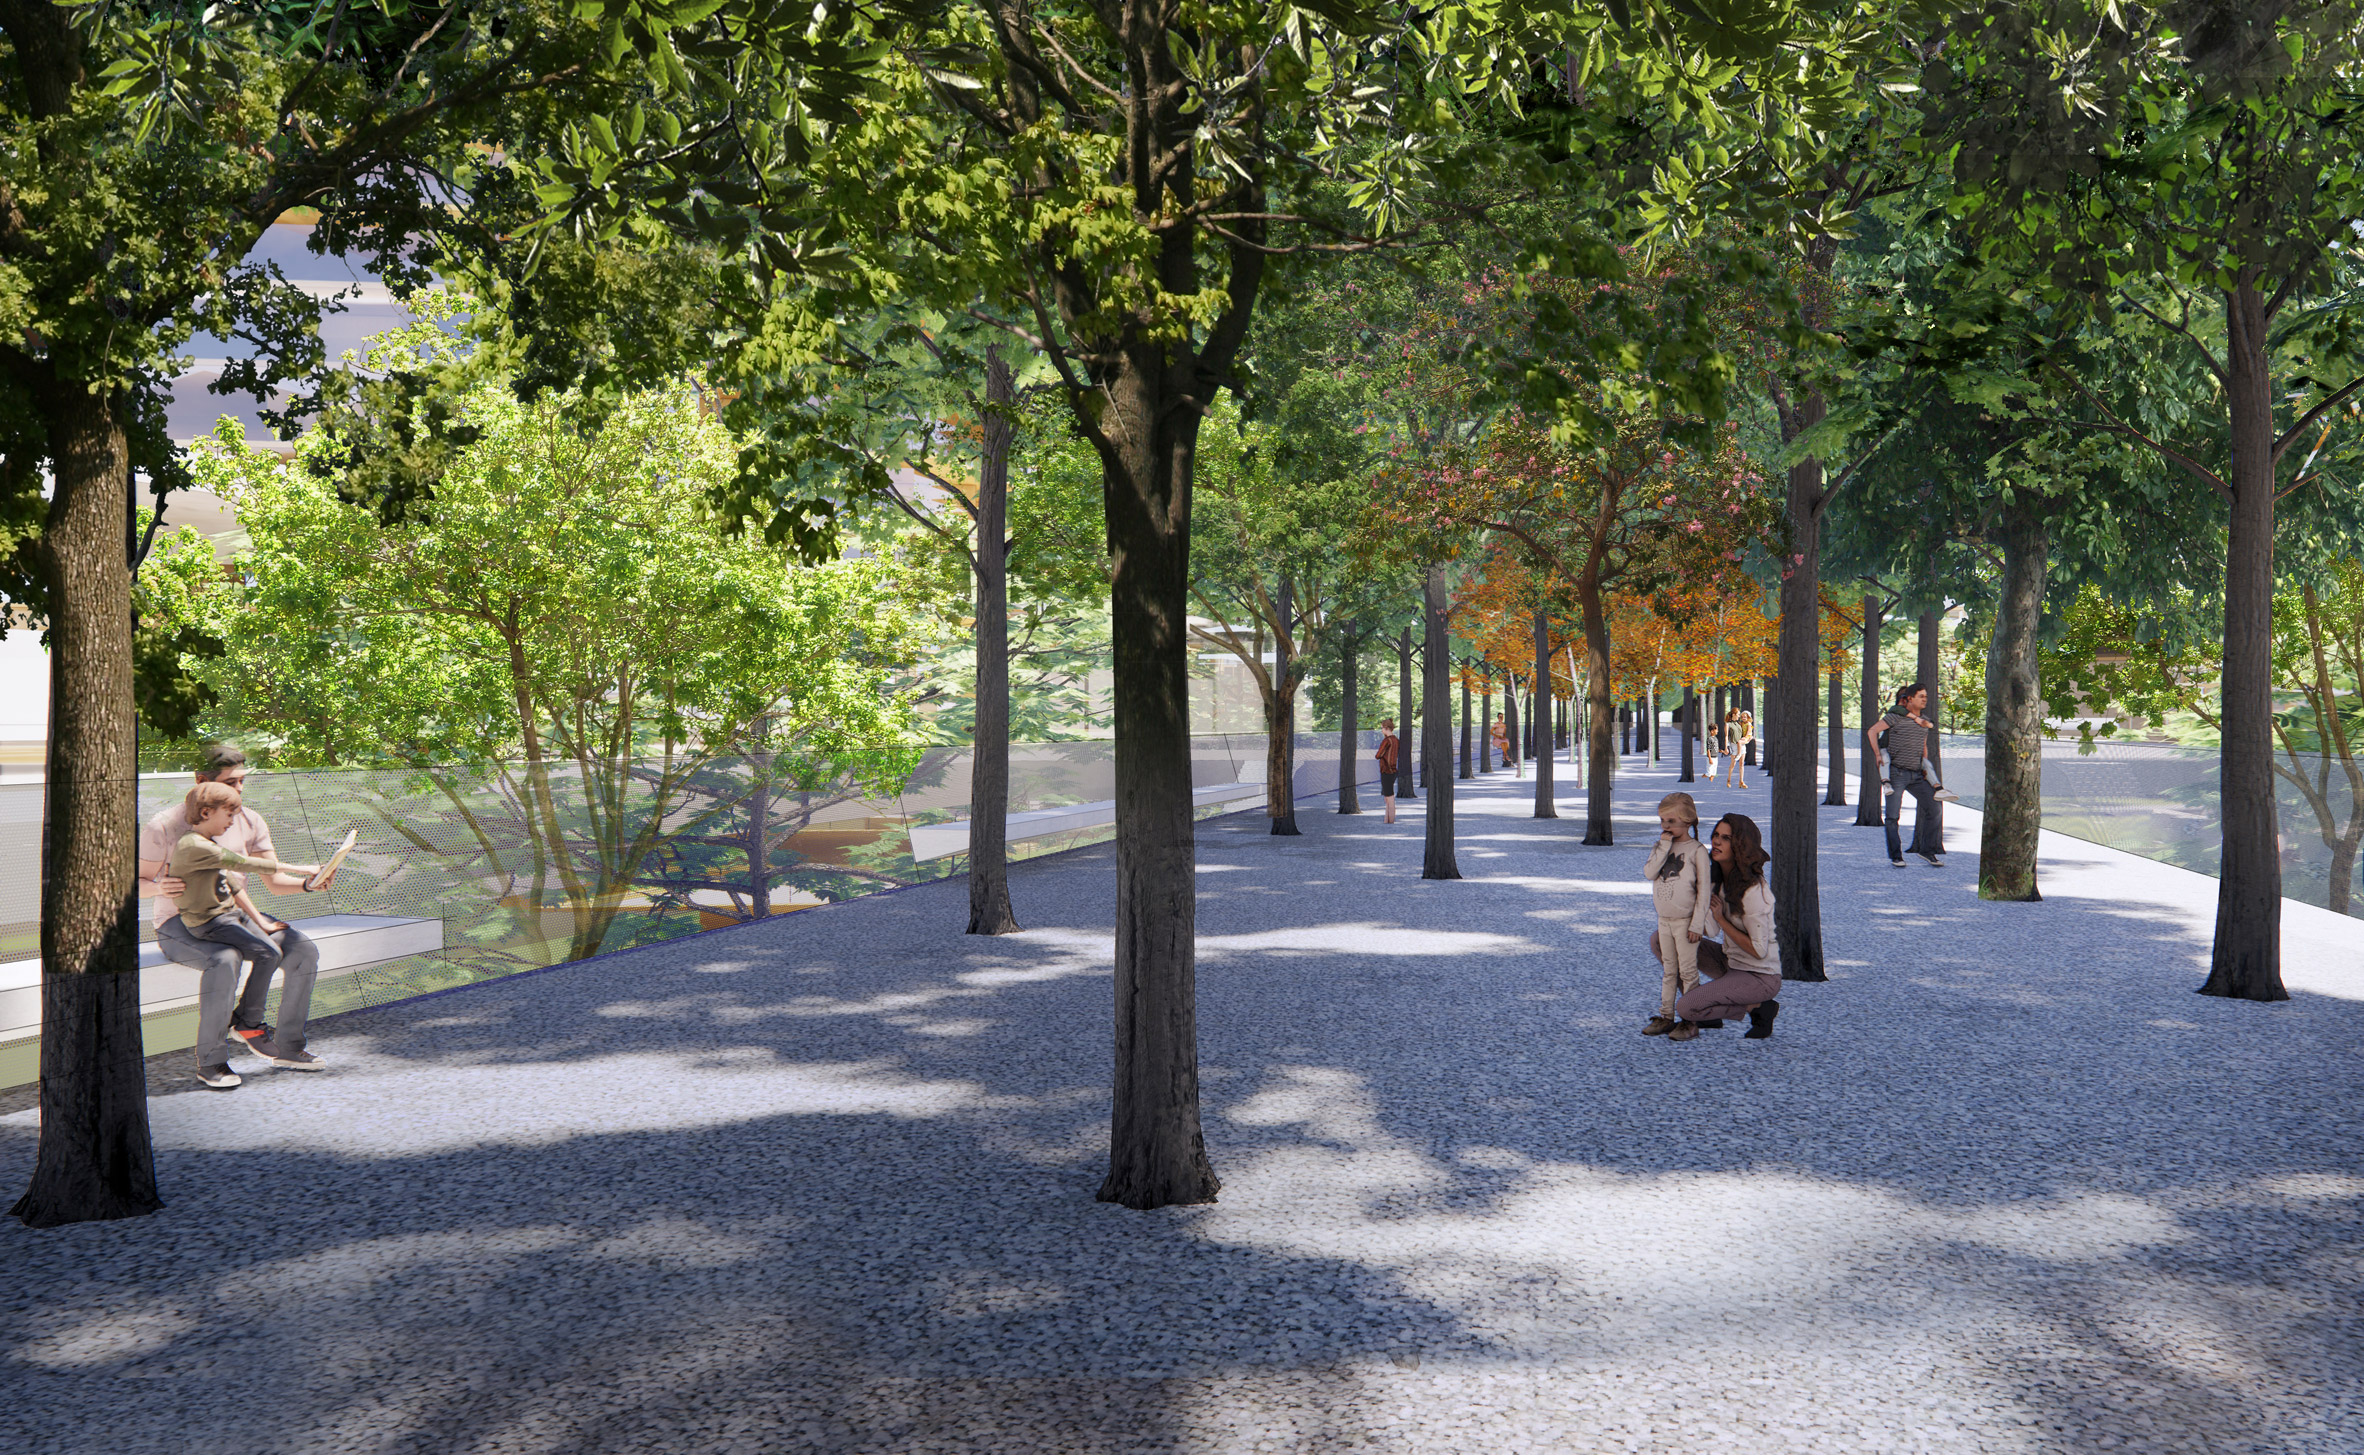 Parco Romana Green Neighbourhood will have an elevated linear park